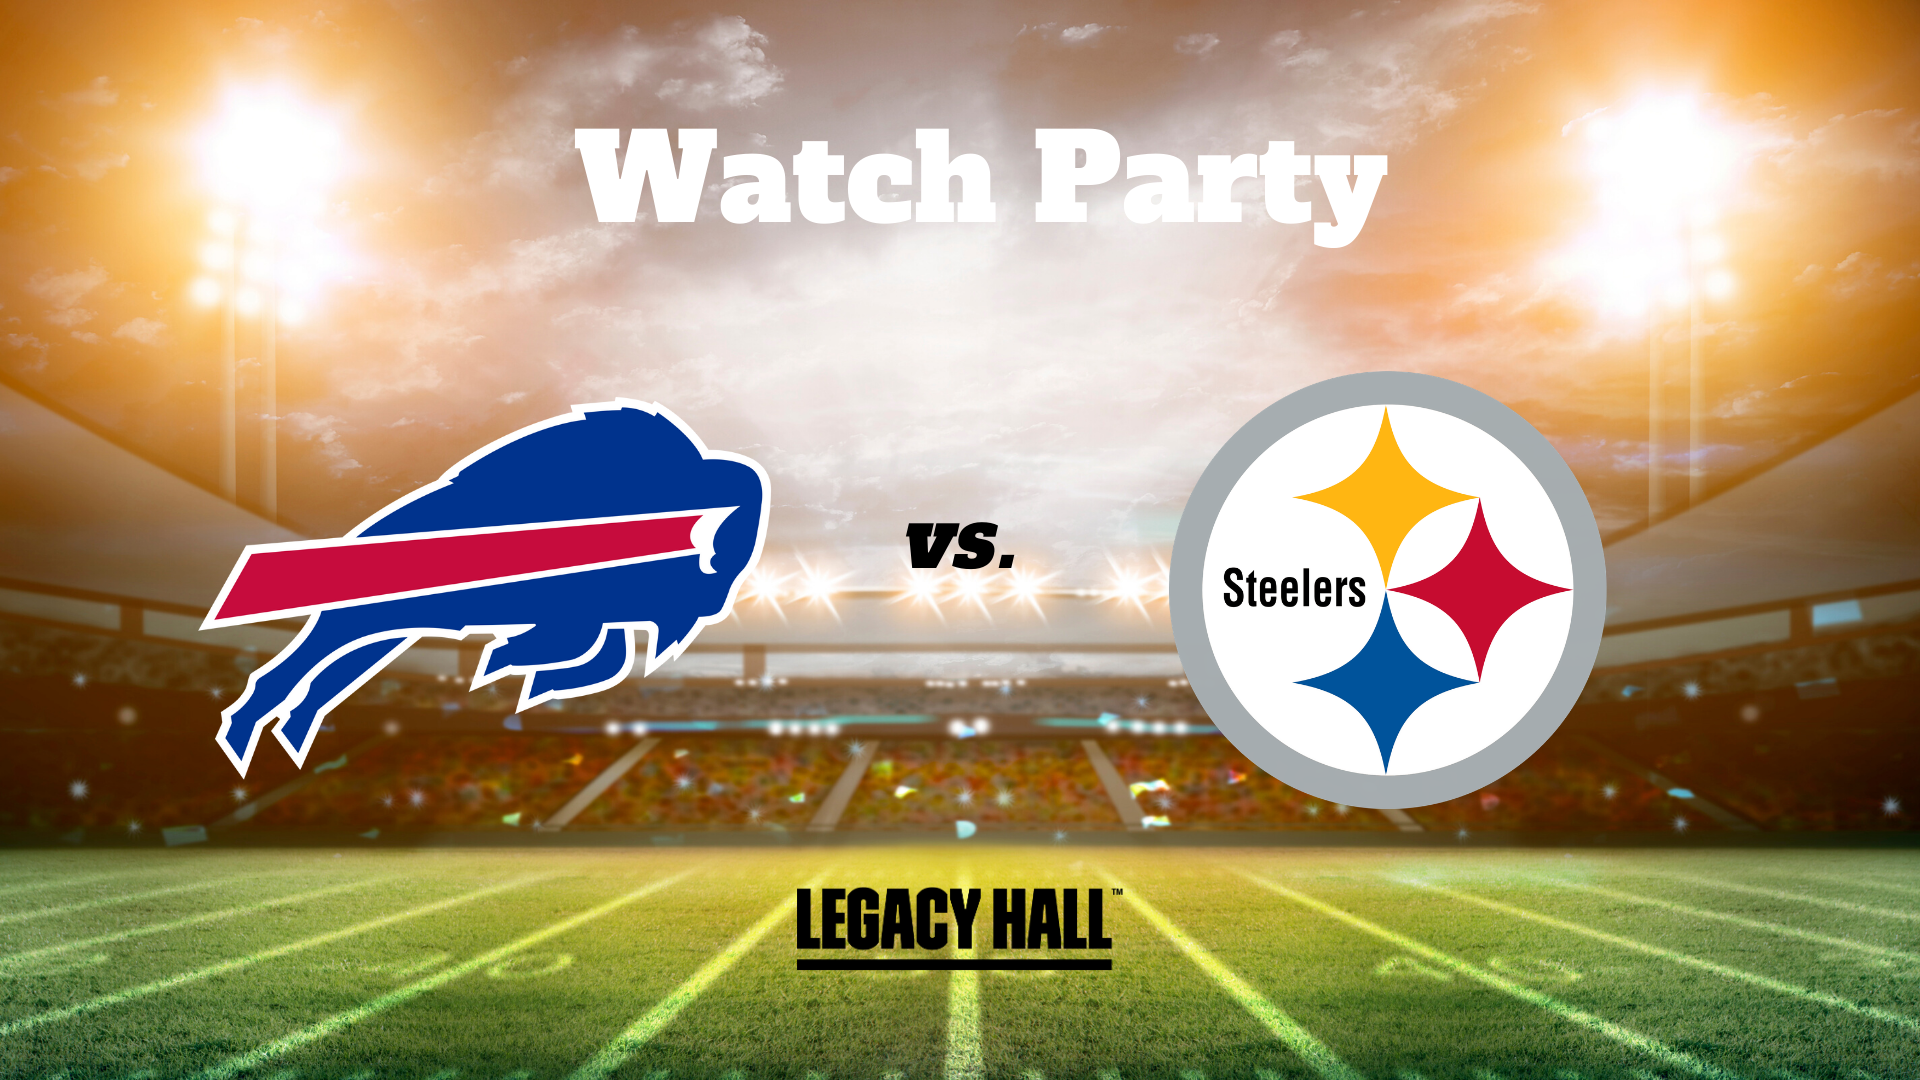 Bills vs. Steelers Watch Party